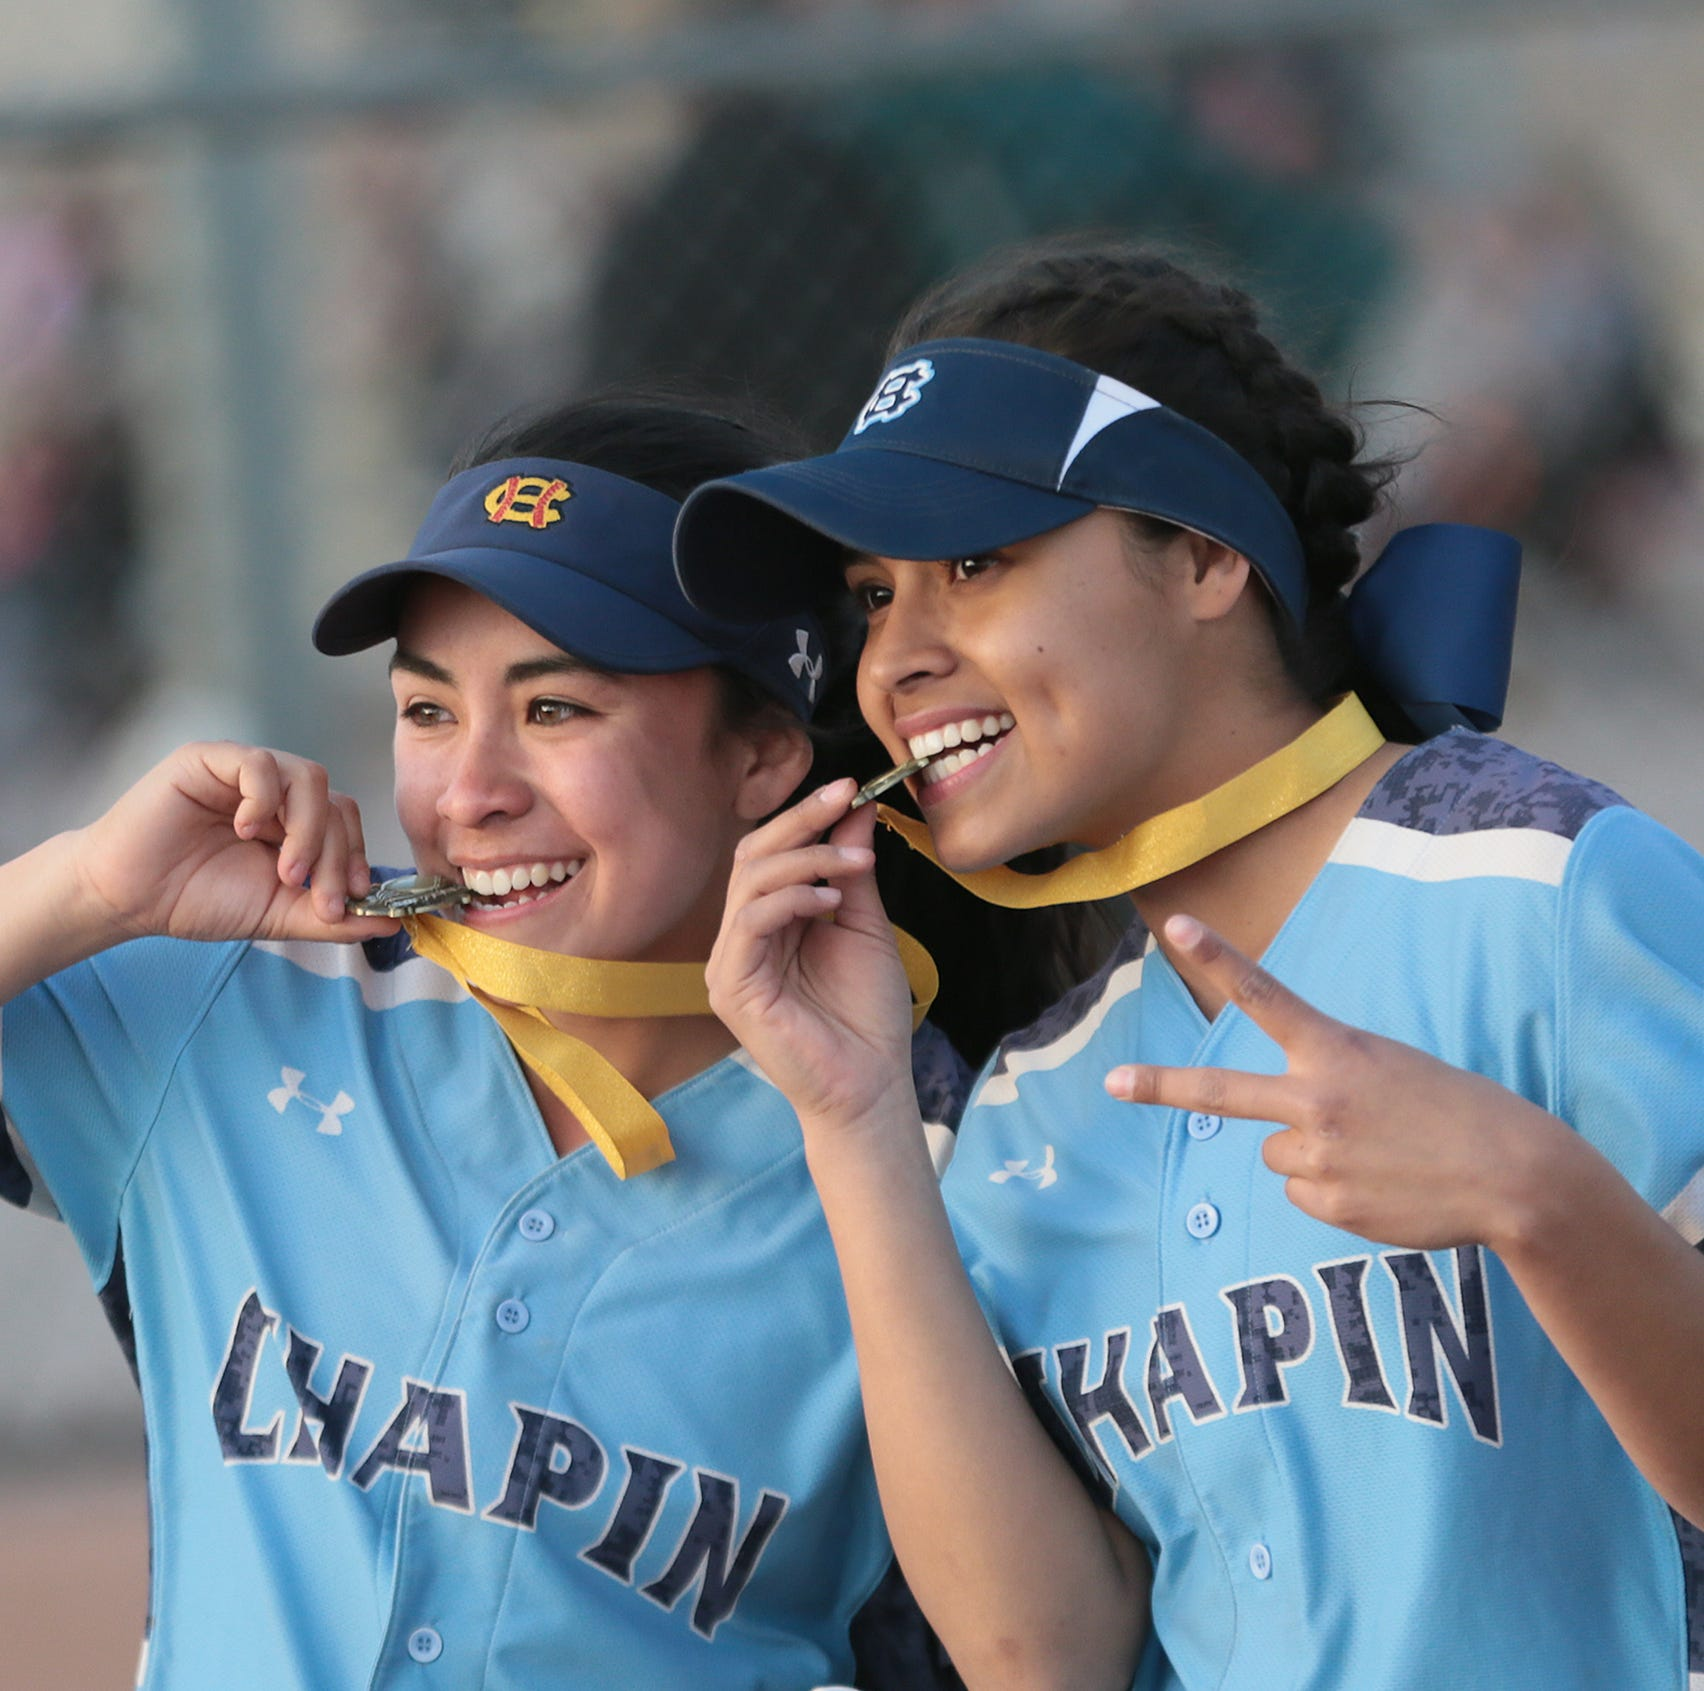 Chapin High School players celebrate after defeating Bushland High School 9-2 in March to win the Fox Country Fast Pitch Softball Tournament at the Northeast Regional Park.